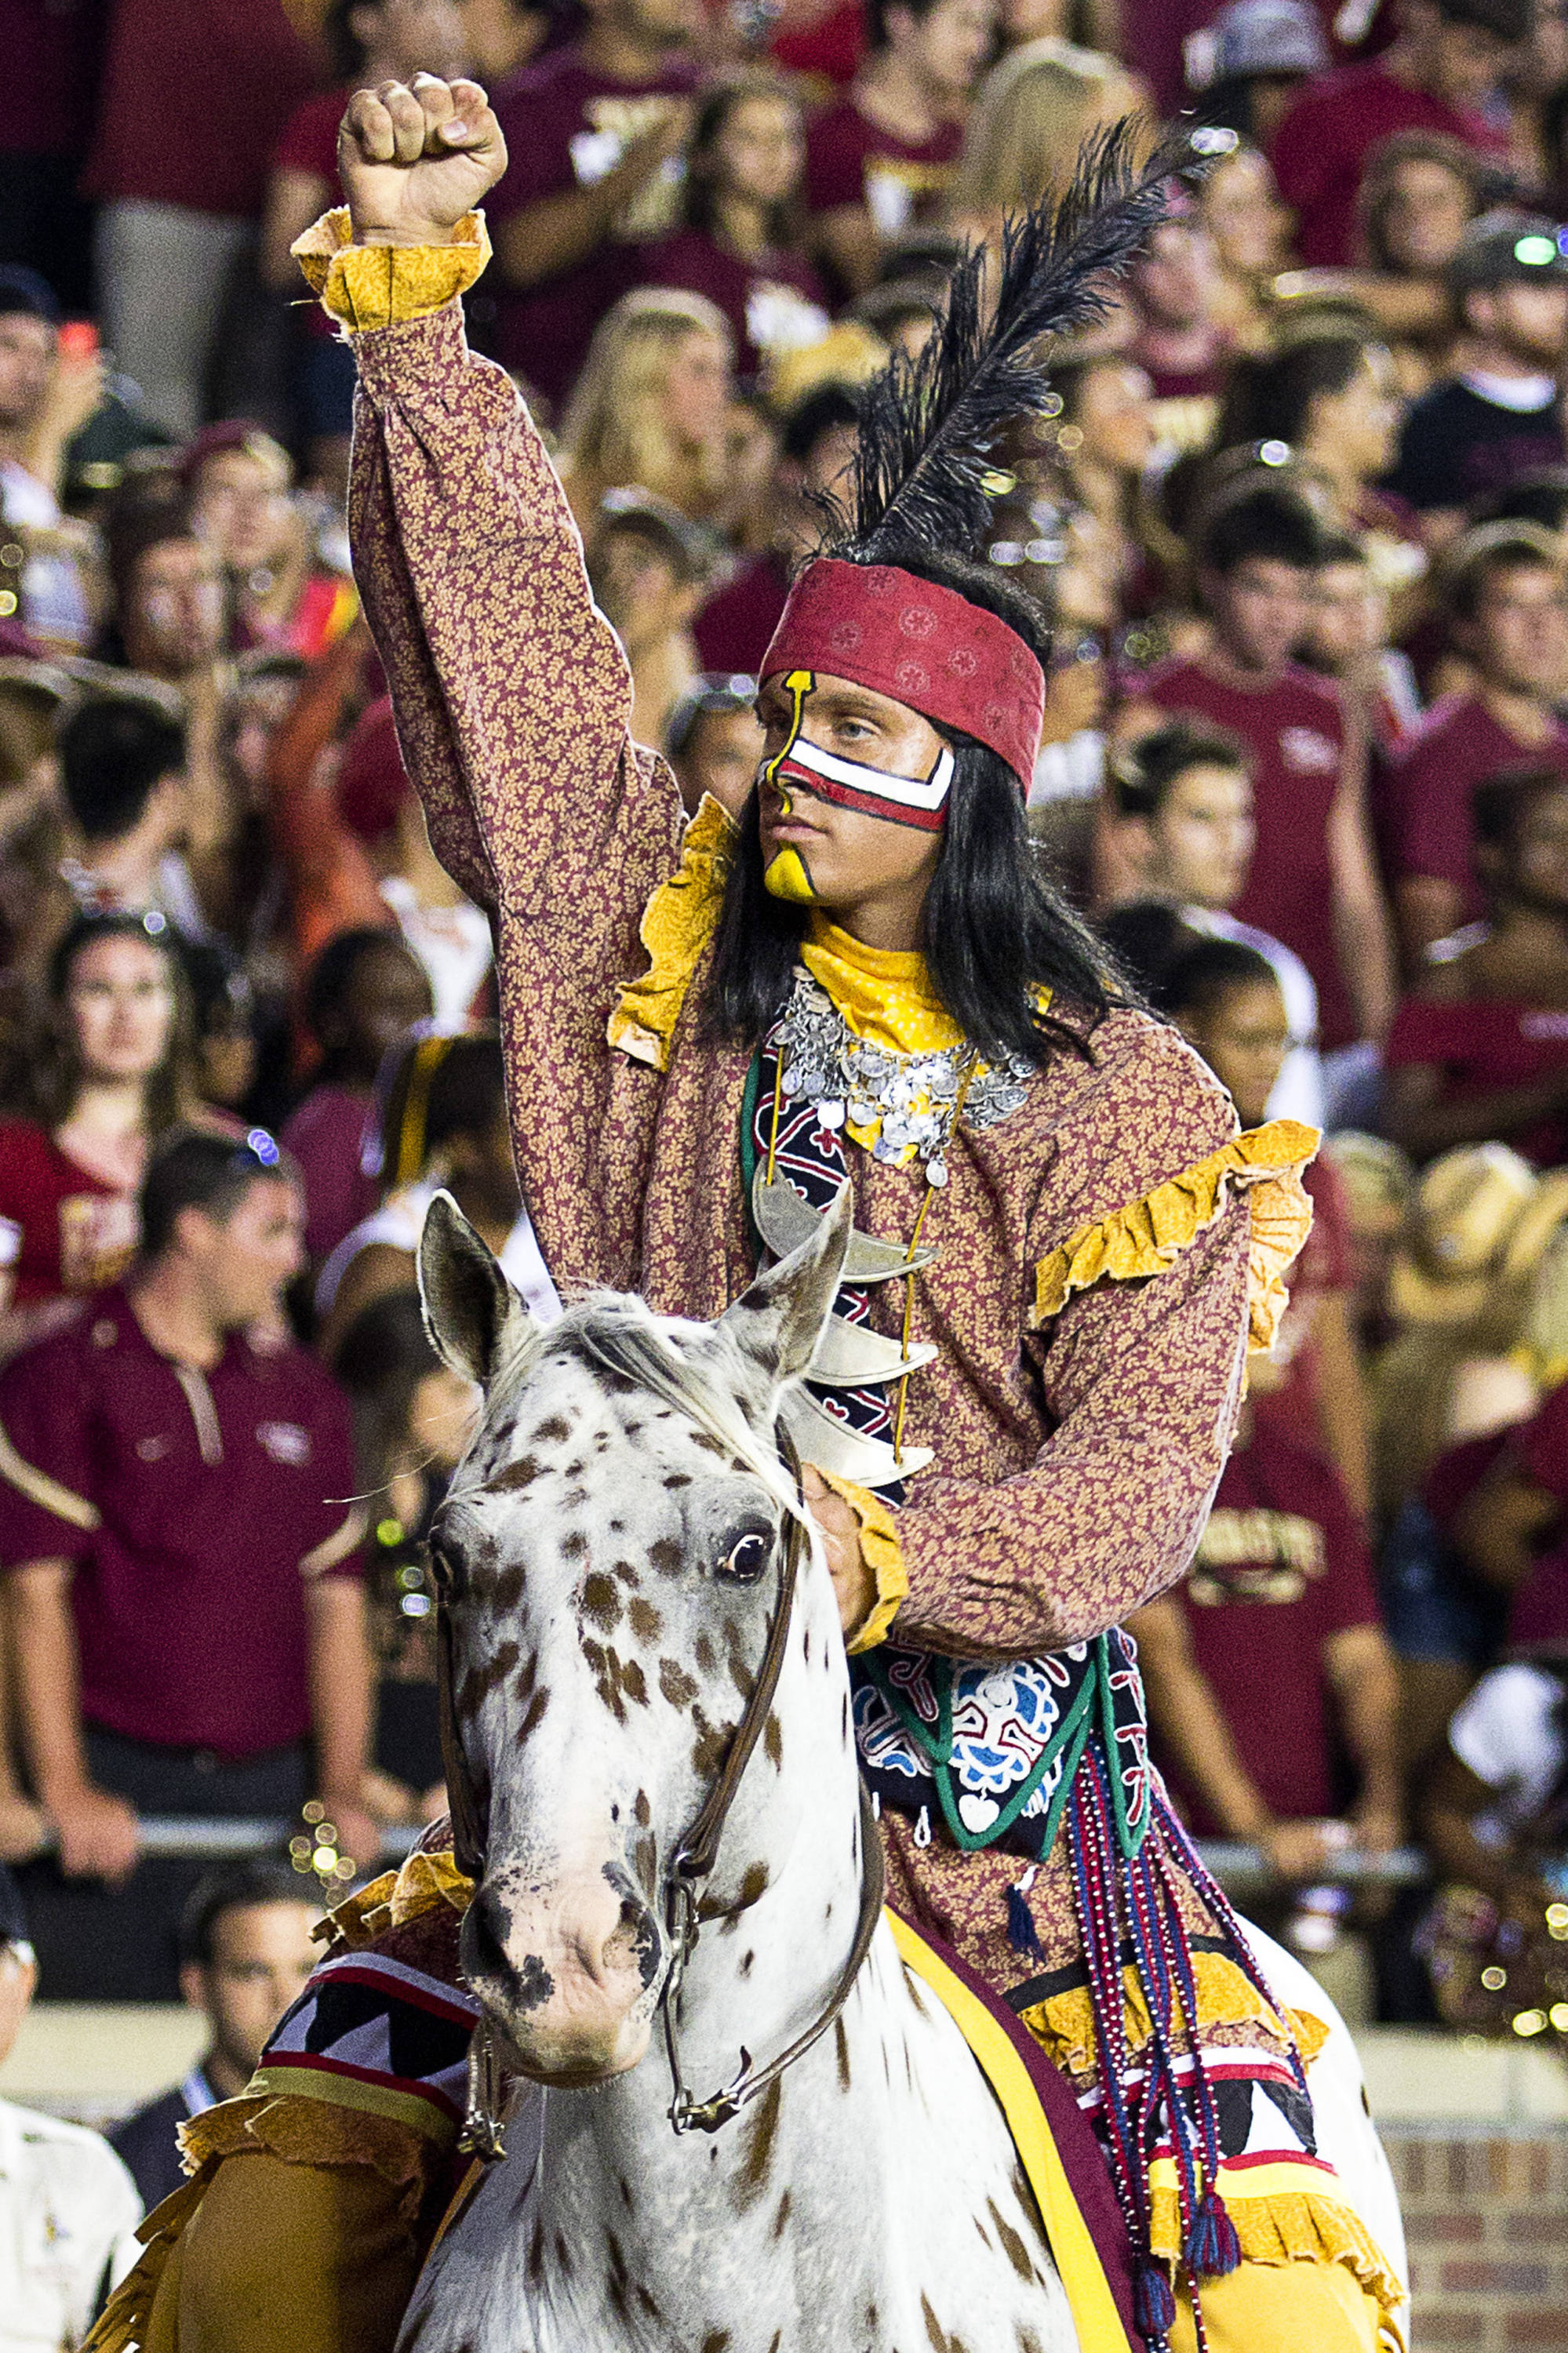 osceola pumps up fans before the game against Oklahoma on September 17, 2011.